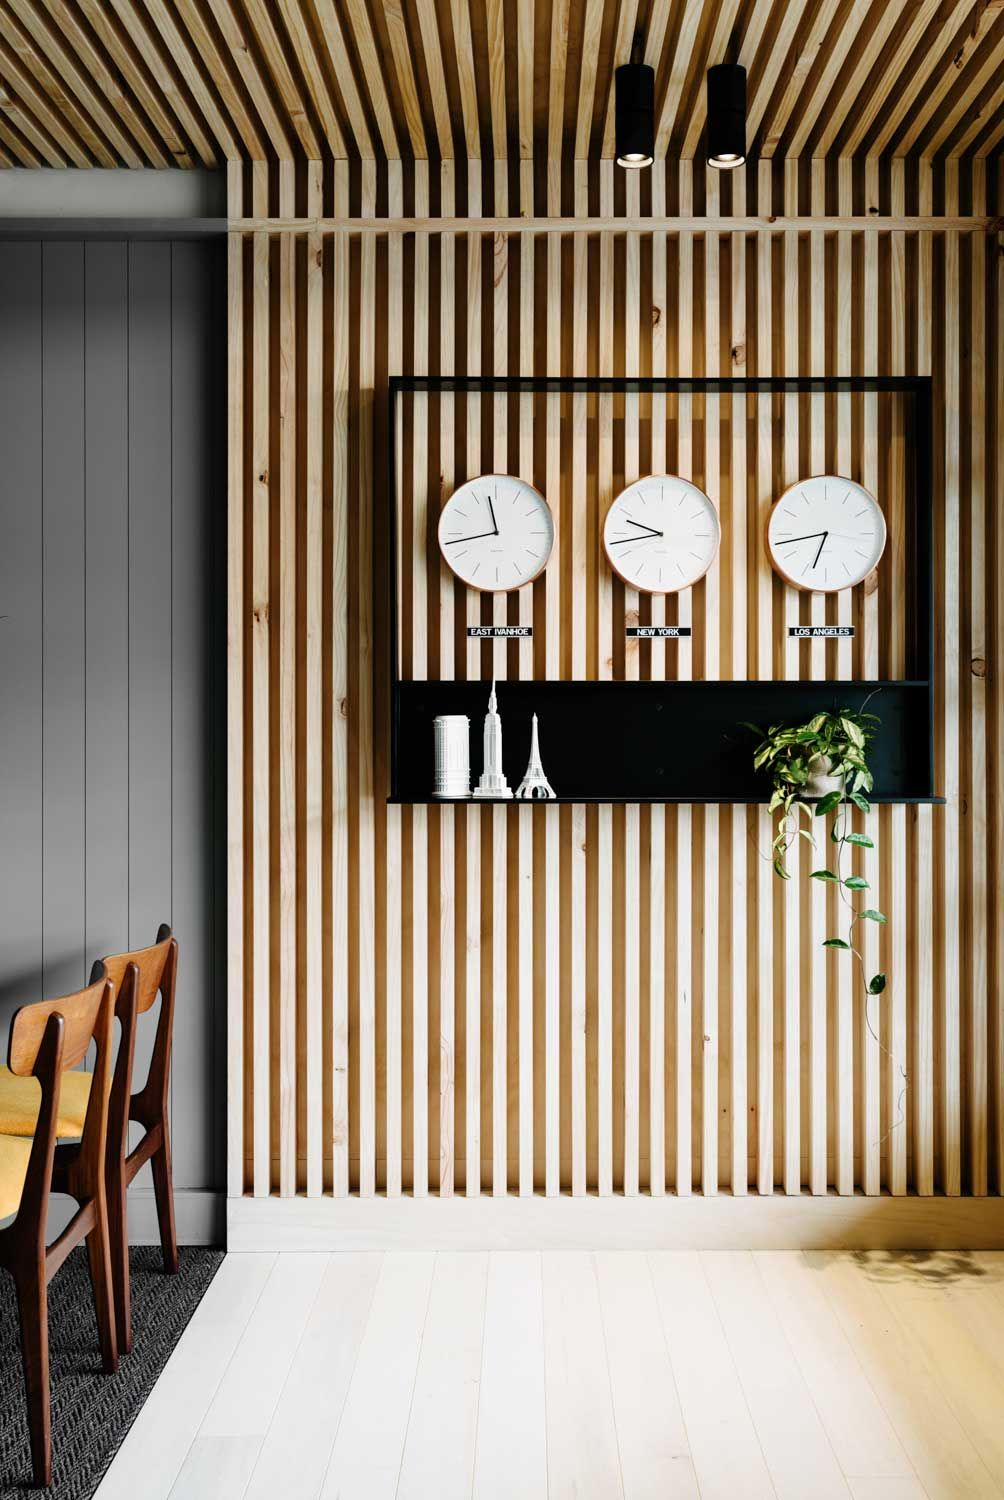 australian design news november 2014 habillage mural pinterest lame de bois voie et plafond. Black Bedroom Furniture Sets. Home Design Ideas